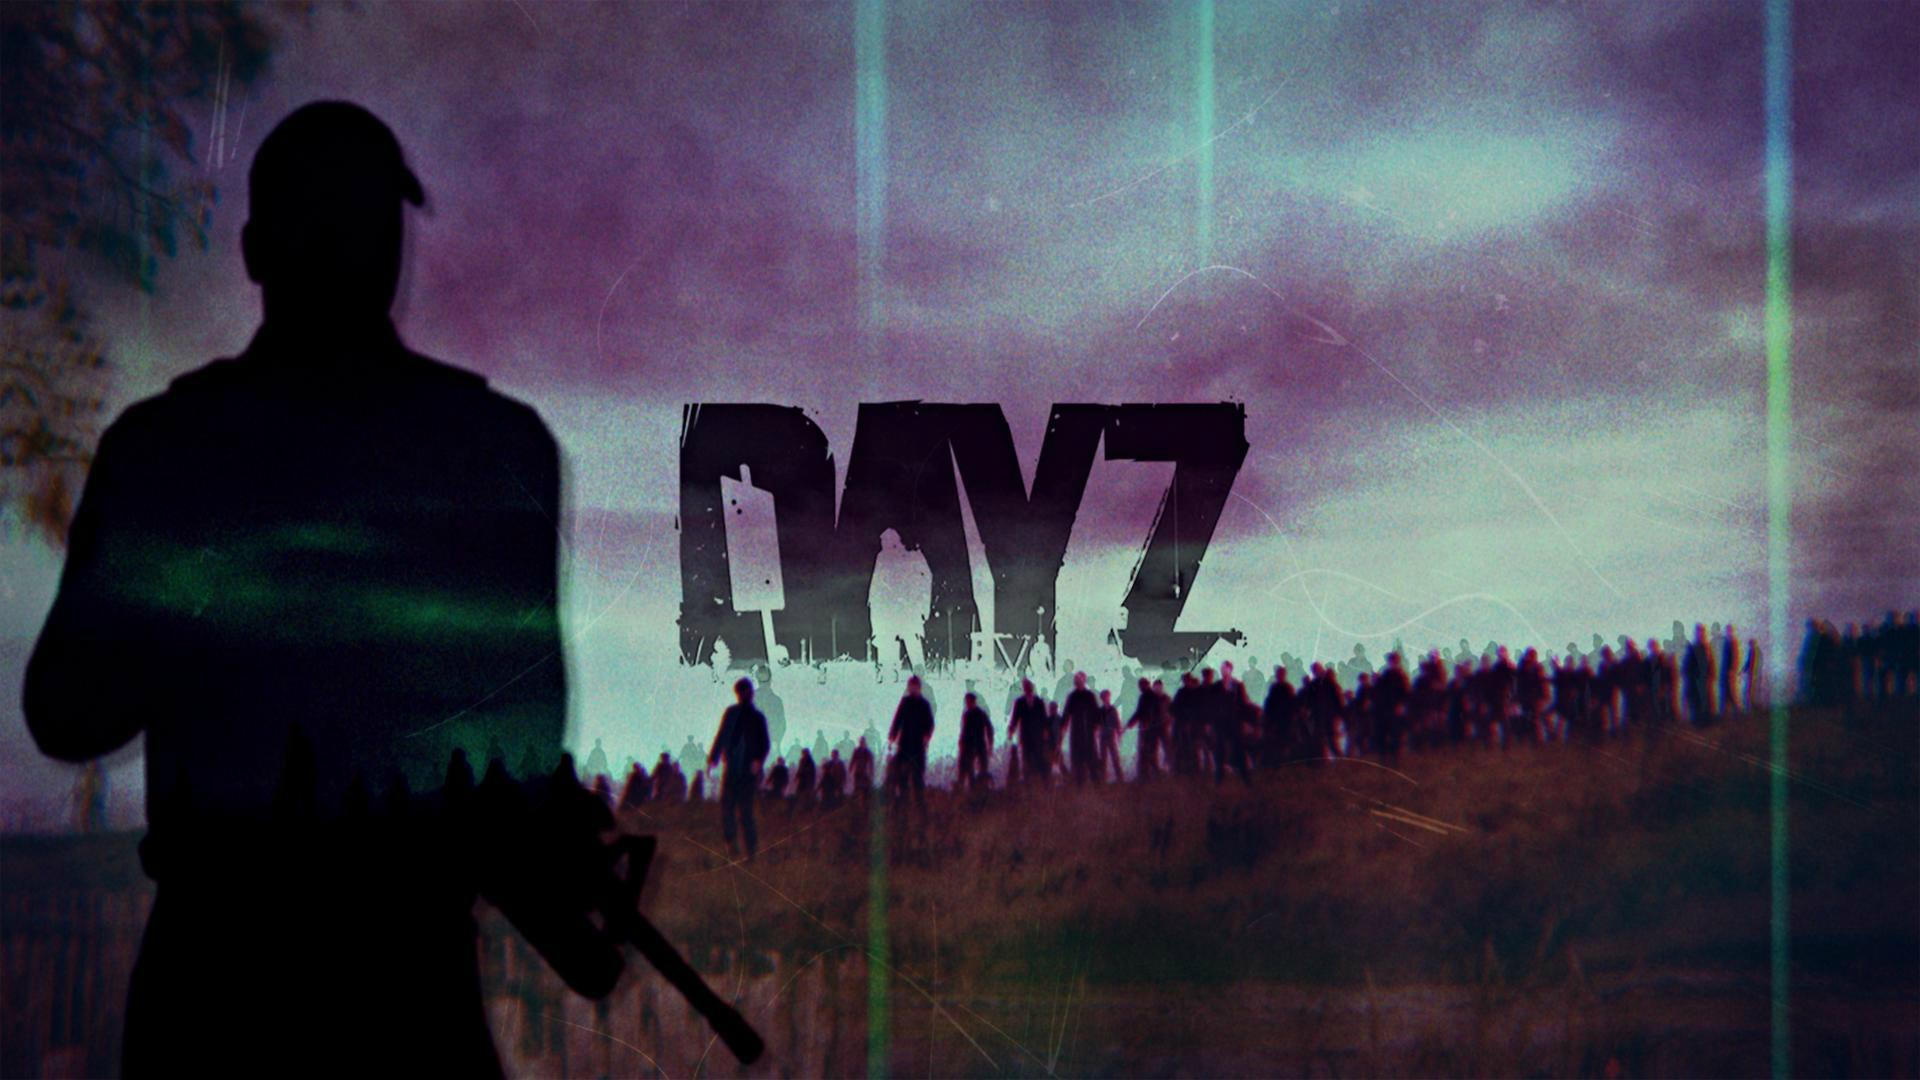 Dean Hall Plans to Step Down as Lead Designer of DayZ